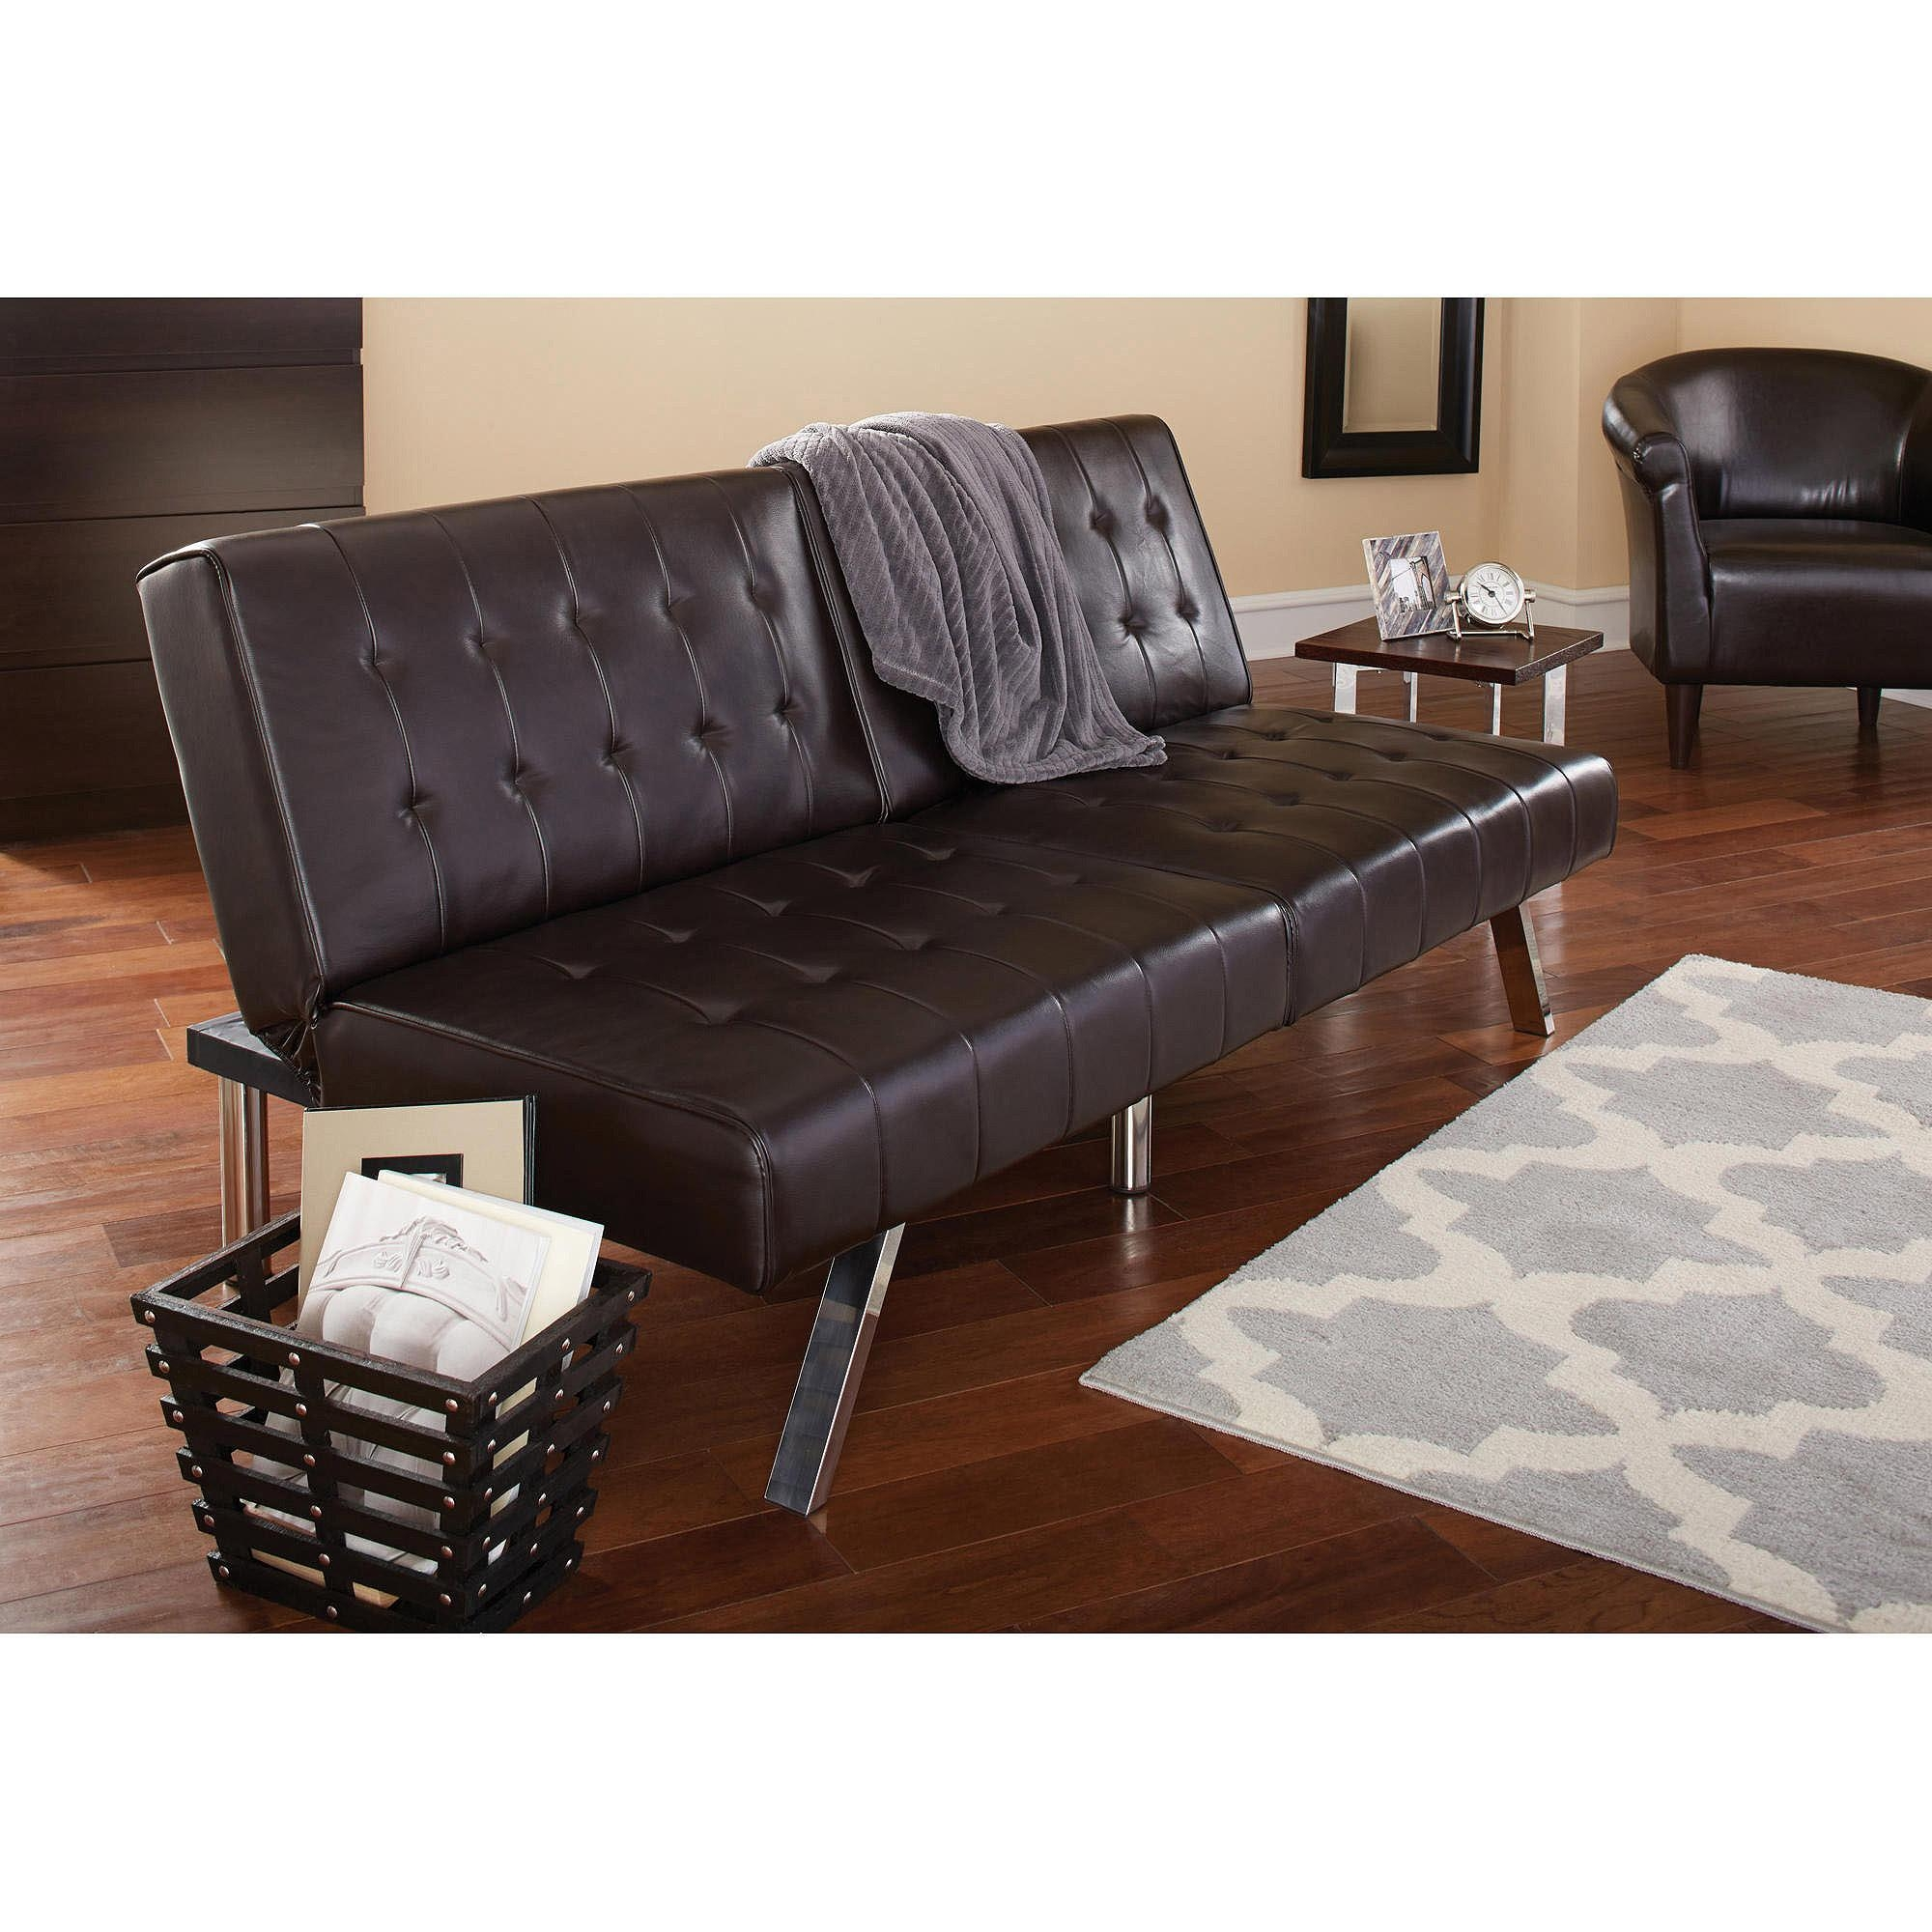 Barcelona Convertible Futon Sofa Bed And Lounger With Pillows Within Convertible Futon Sofa Beds (View 2 of 20)